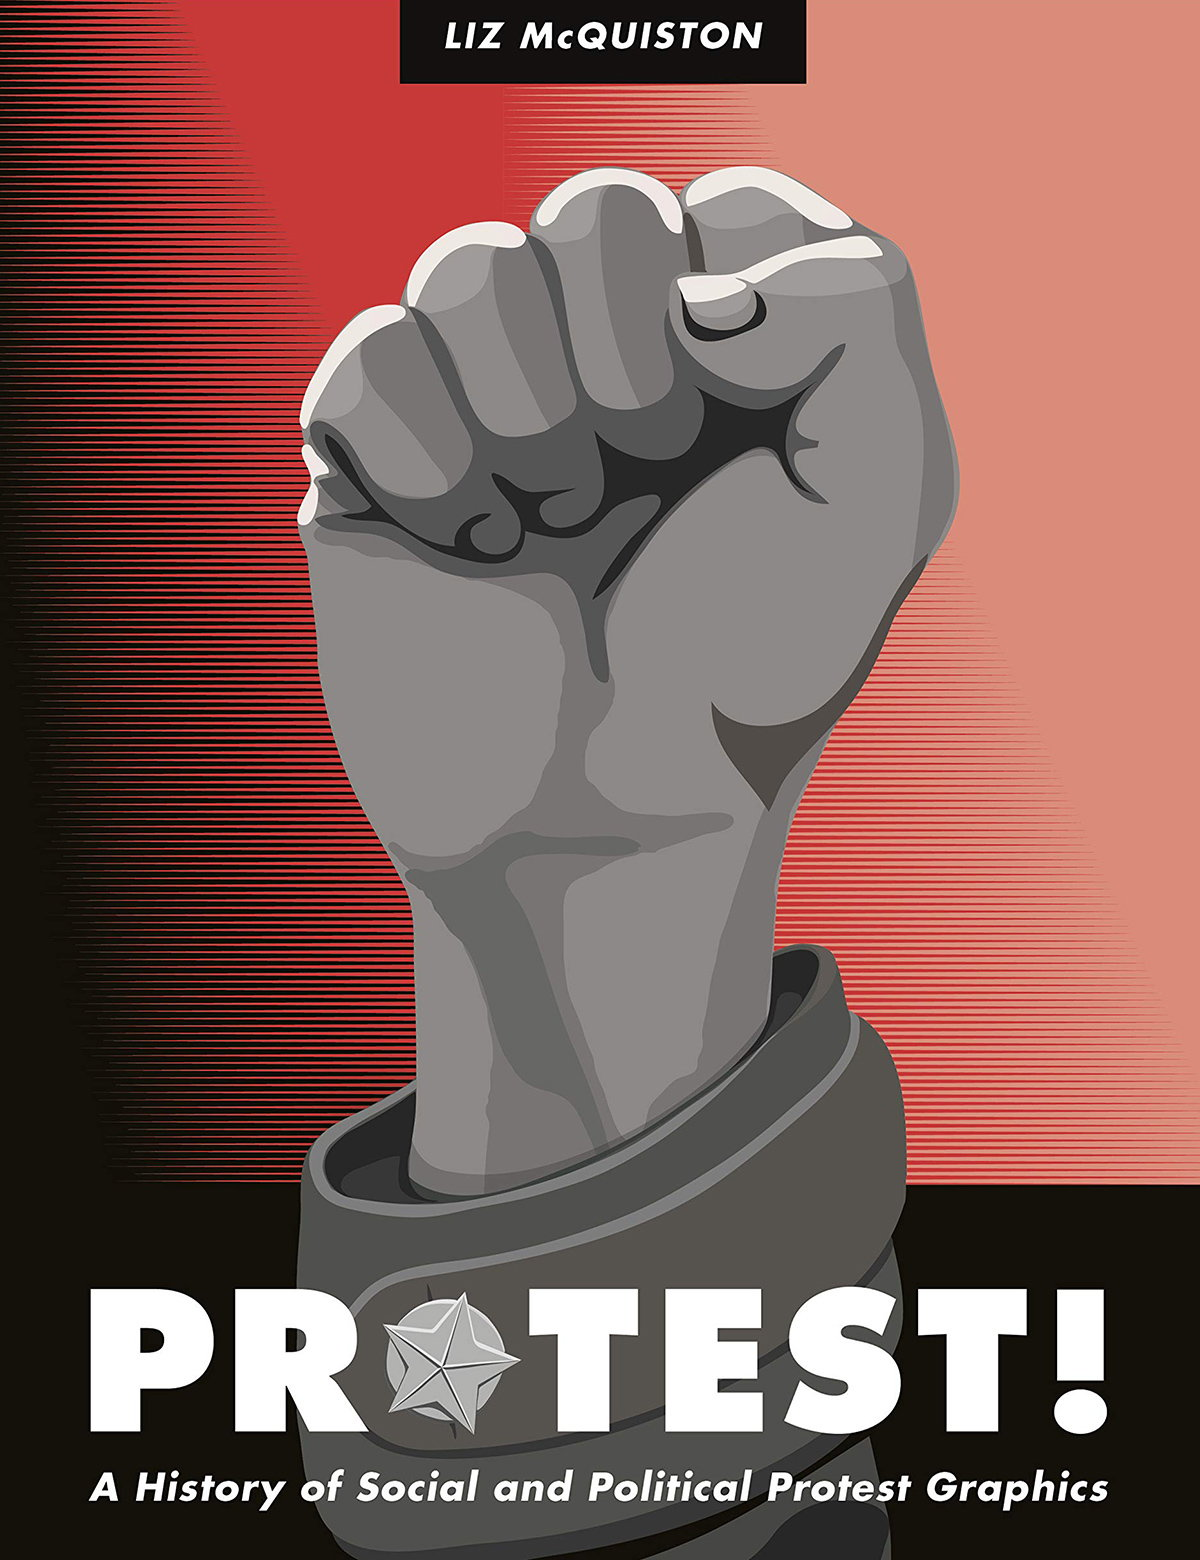 Protest! - A History of Social and Political Protest Graphics